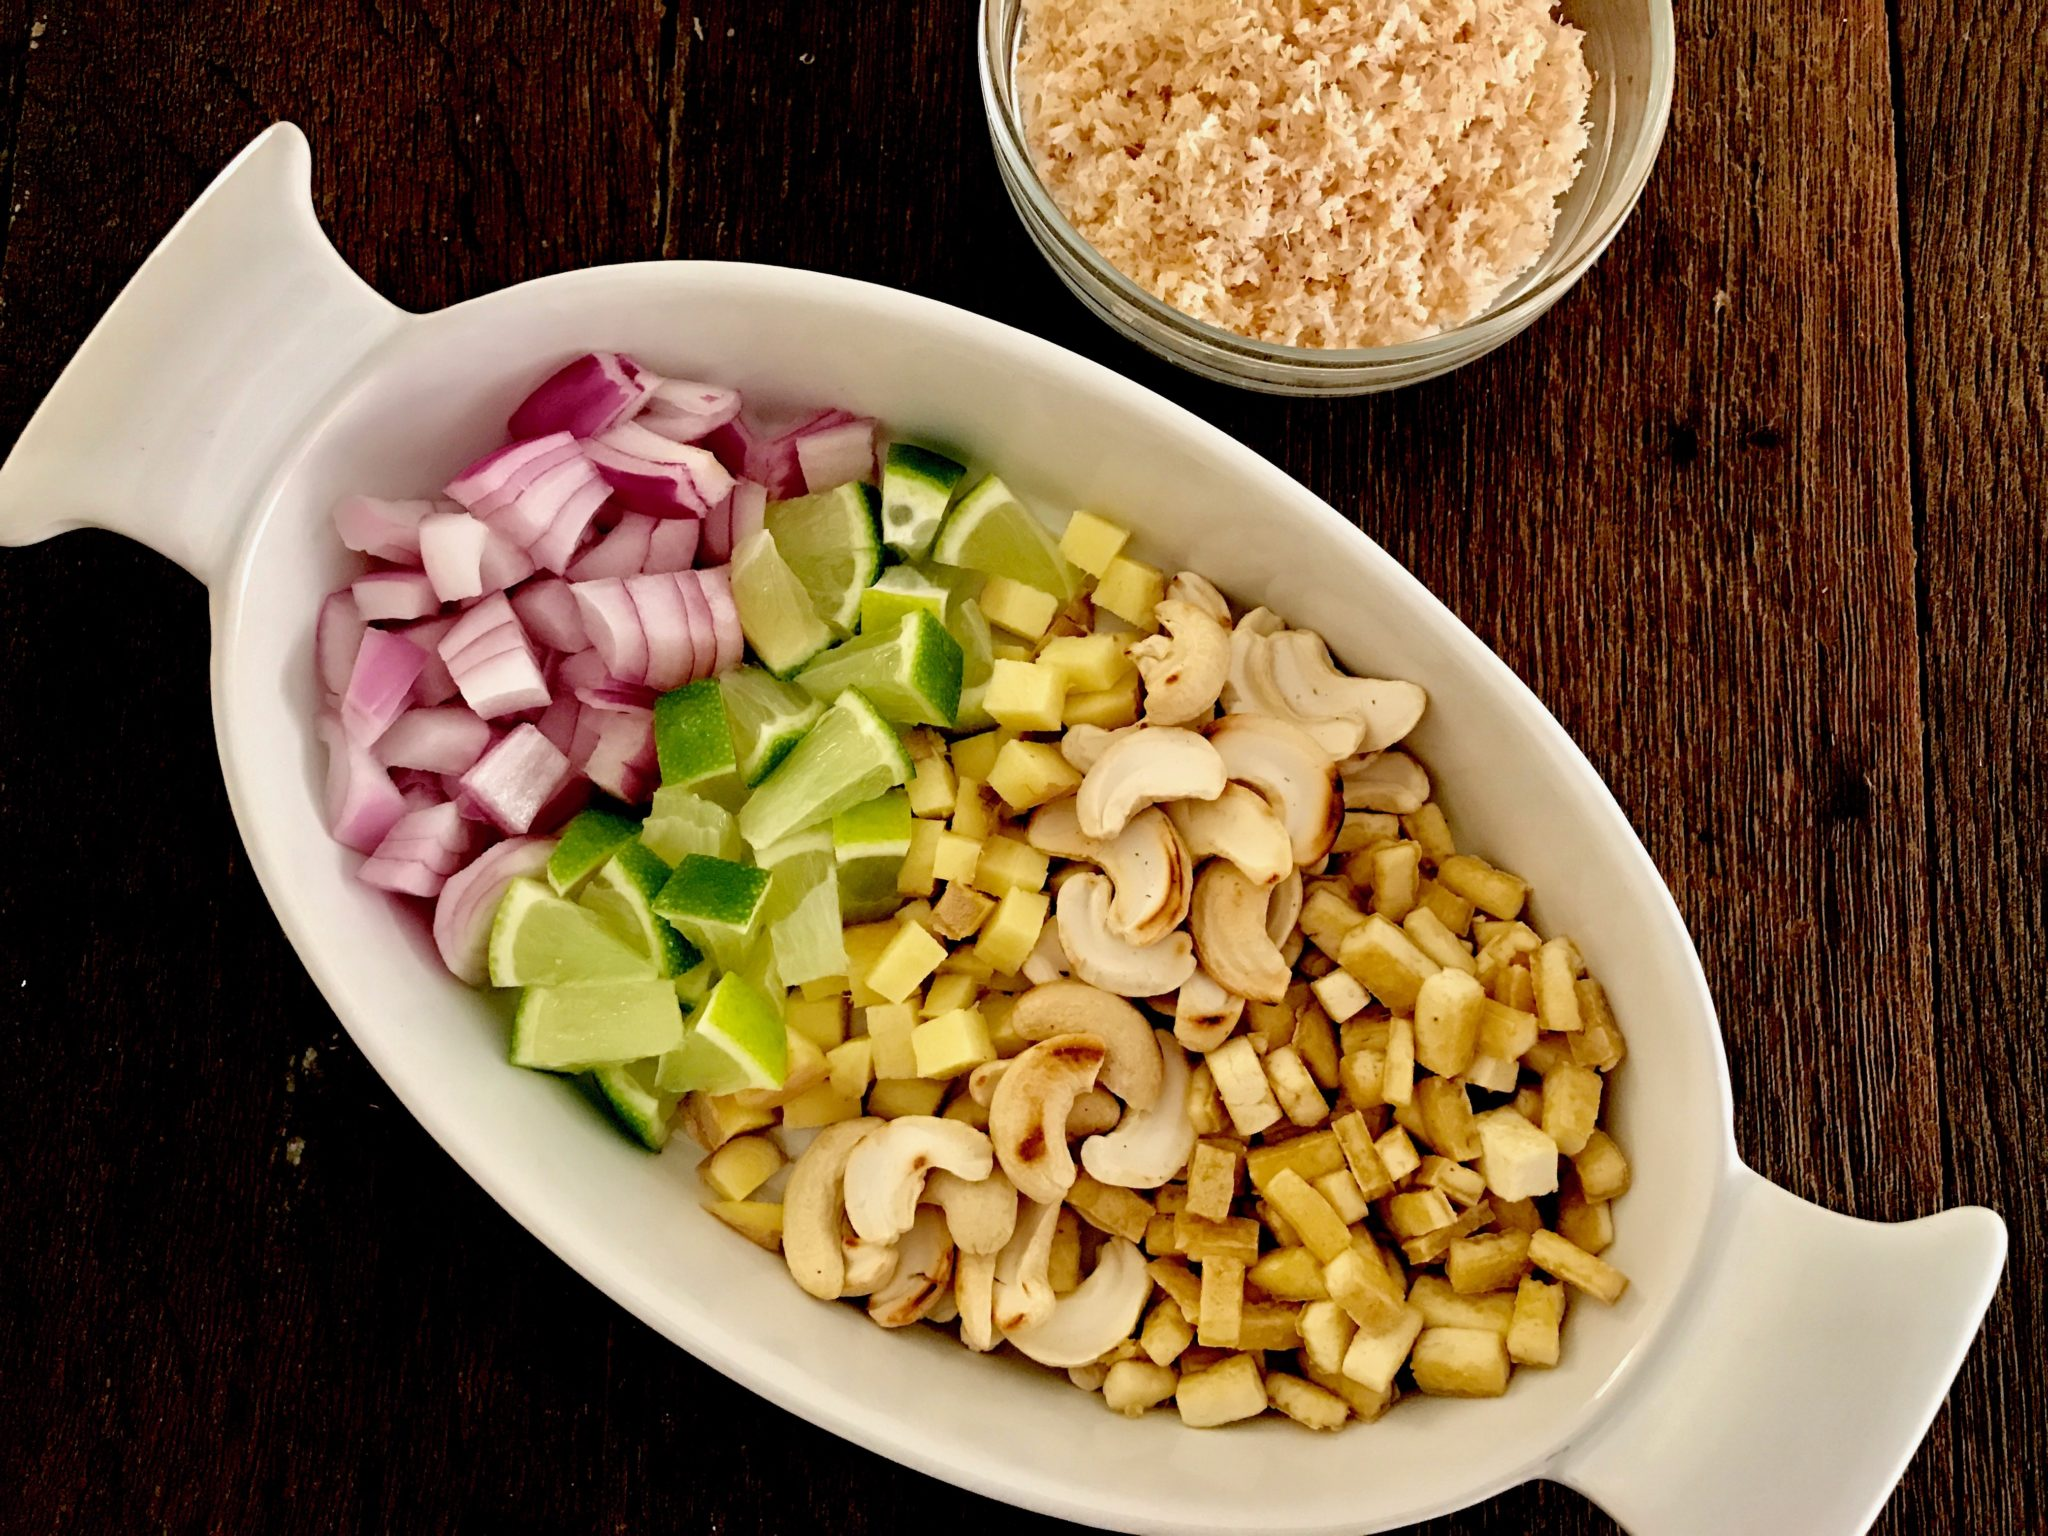 arrange cut lime, red onion, ginger, toasted cashew and crispy tofu in a plate